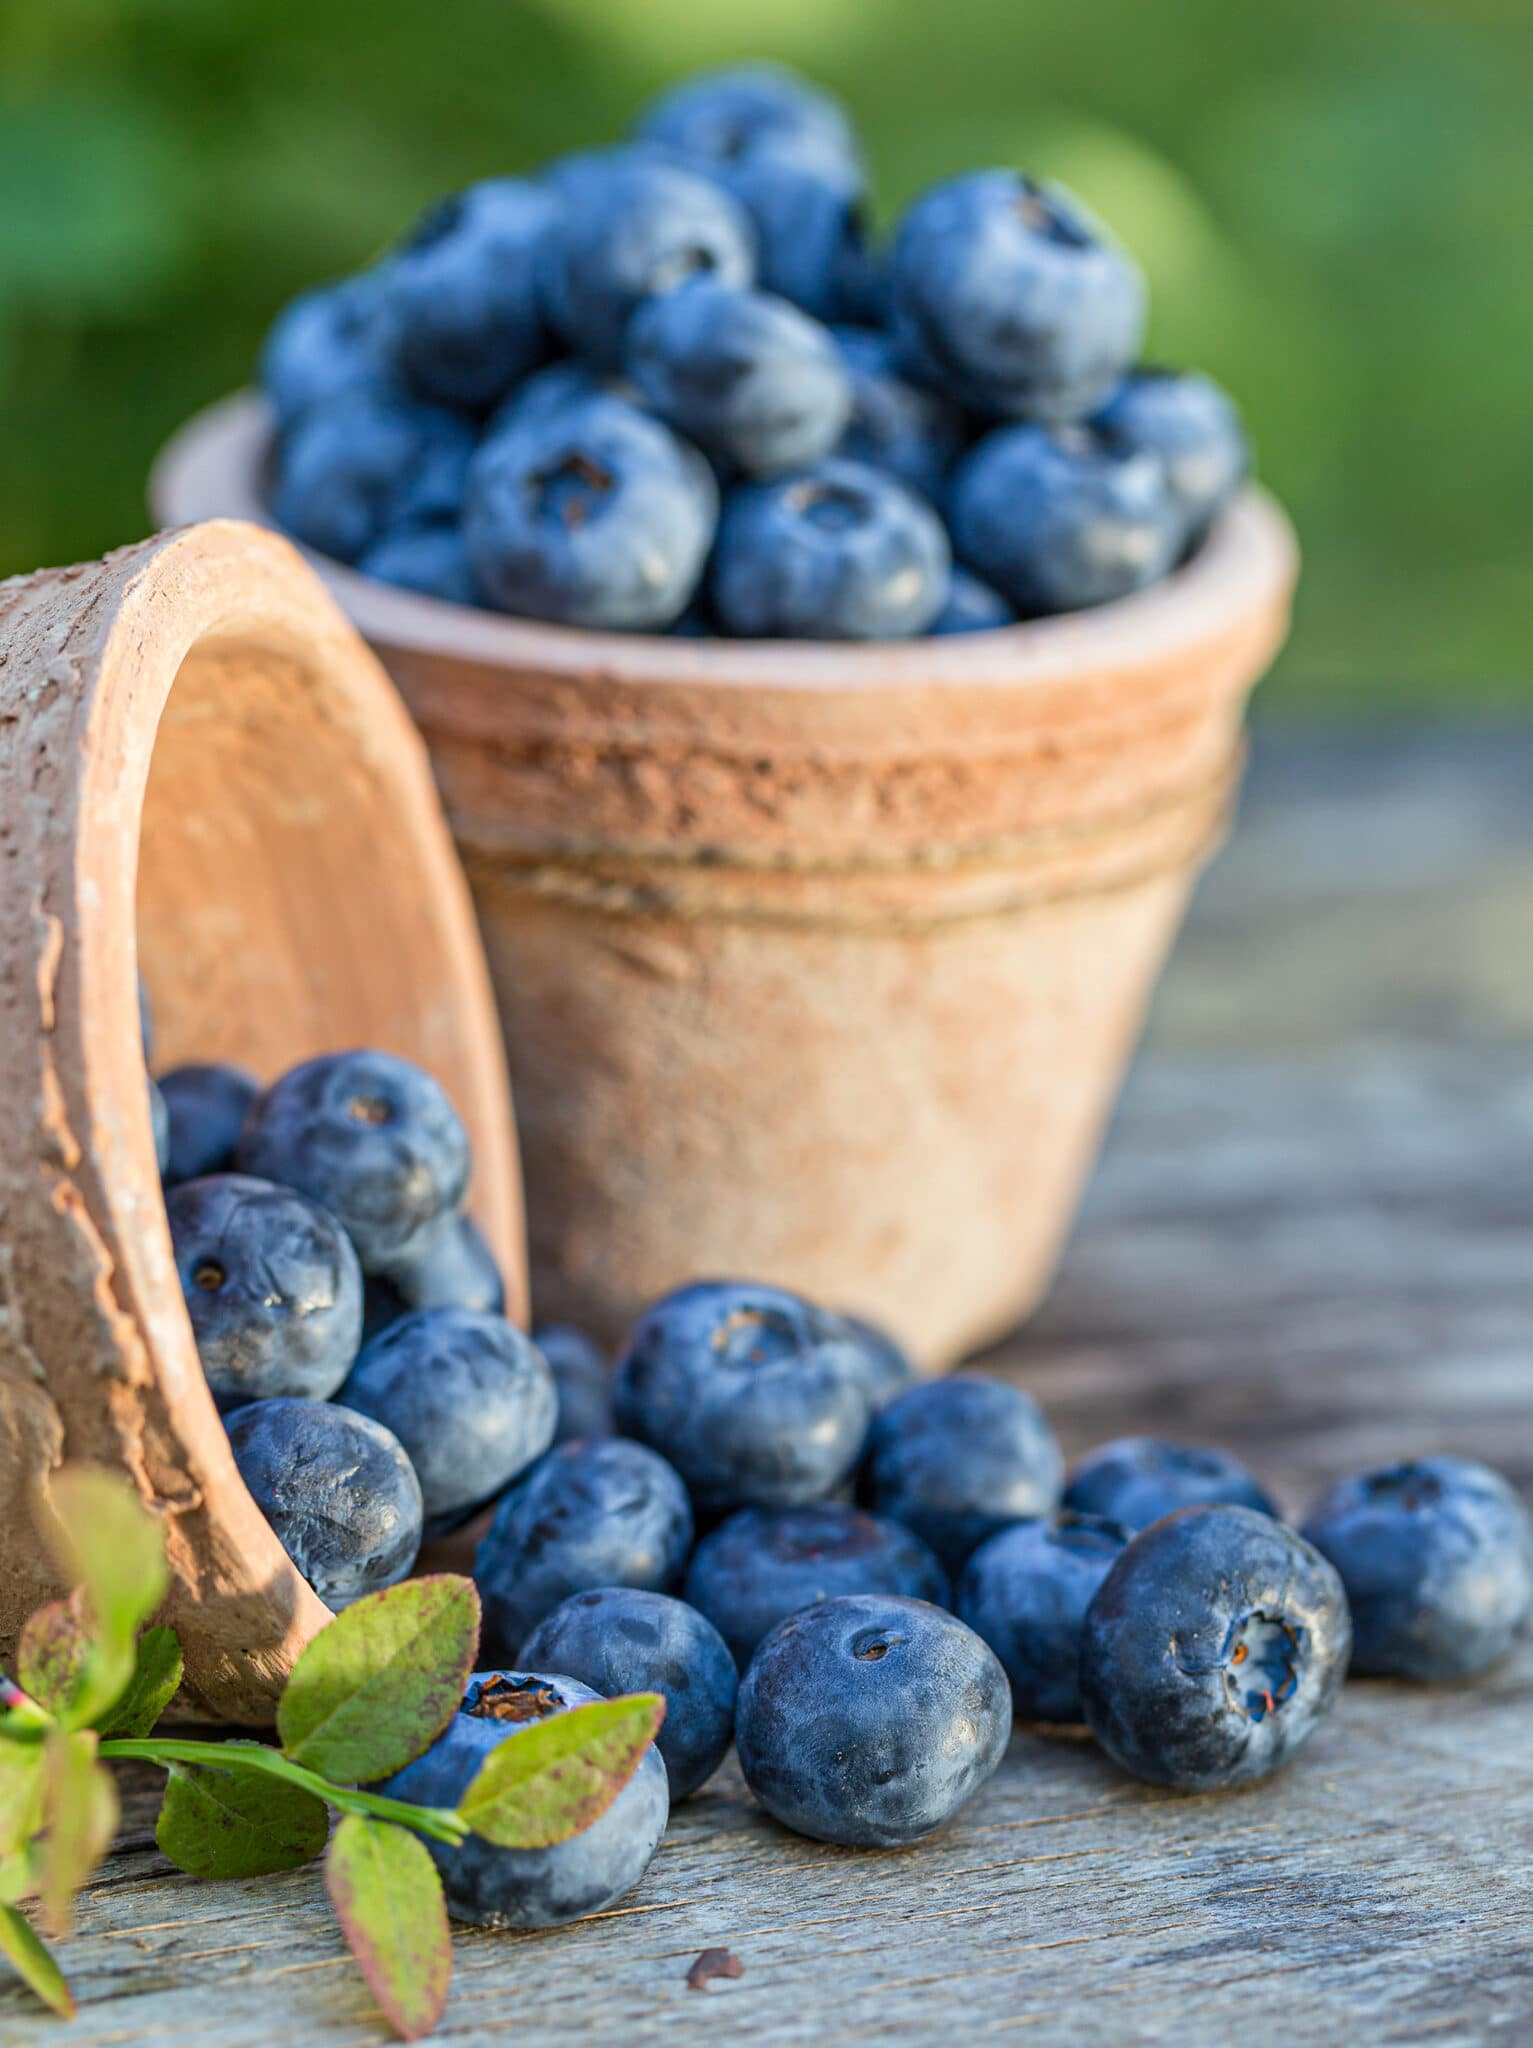 Blueberries in terra cotta pots with one pot spilling over.